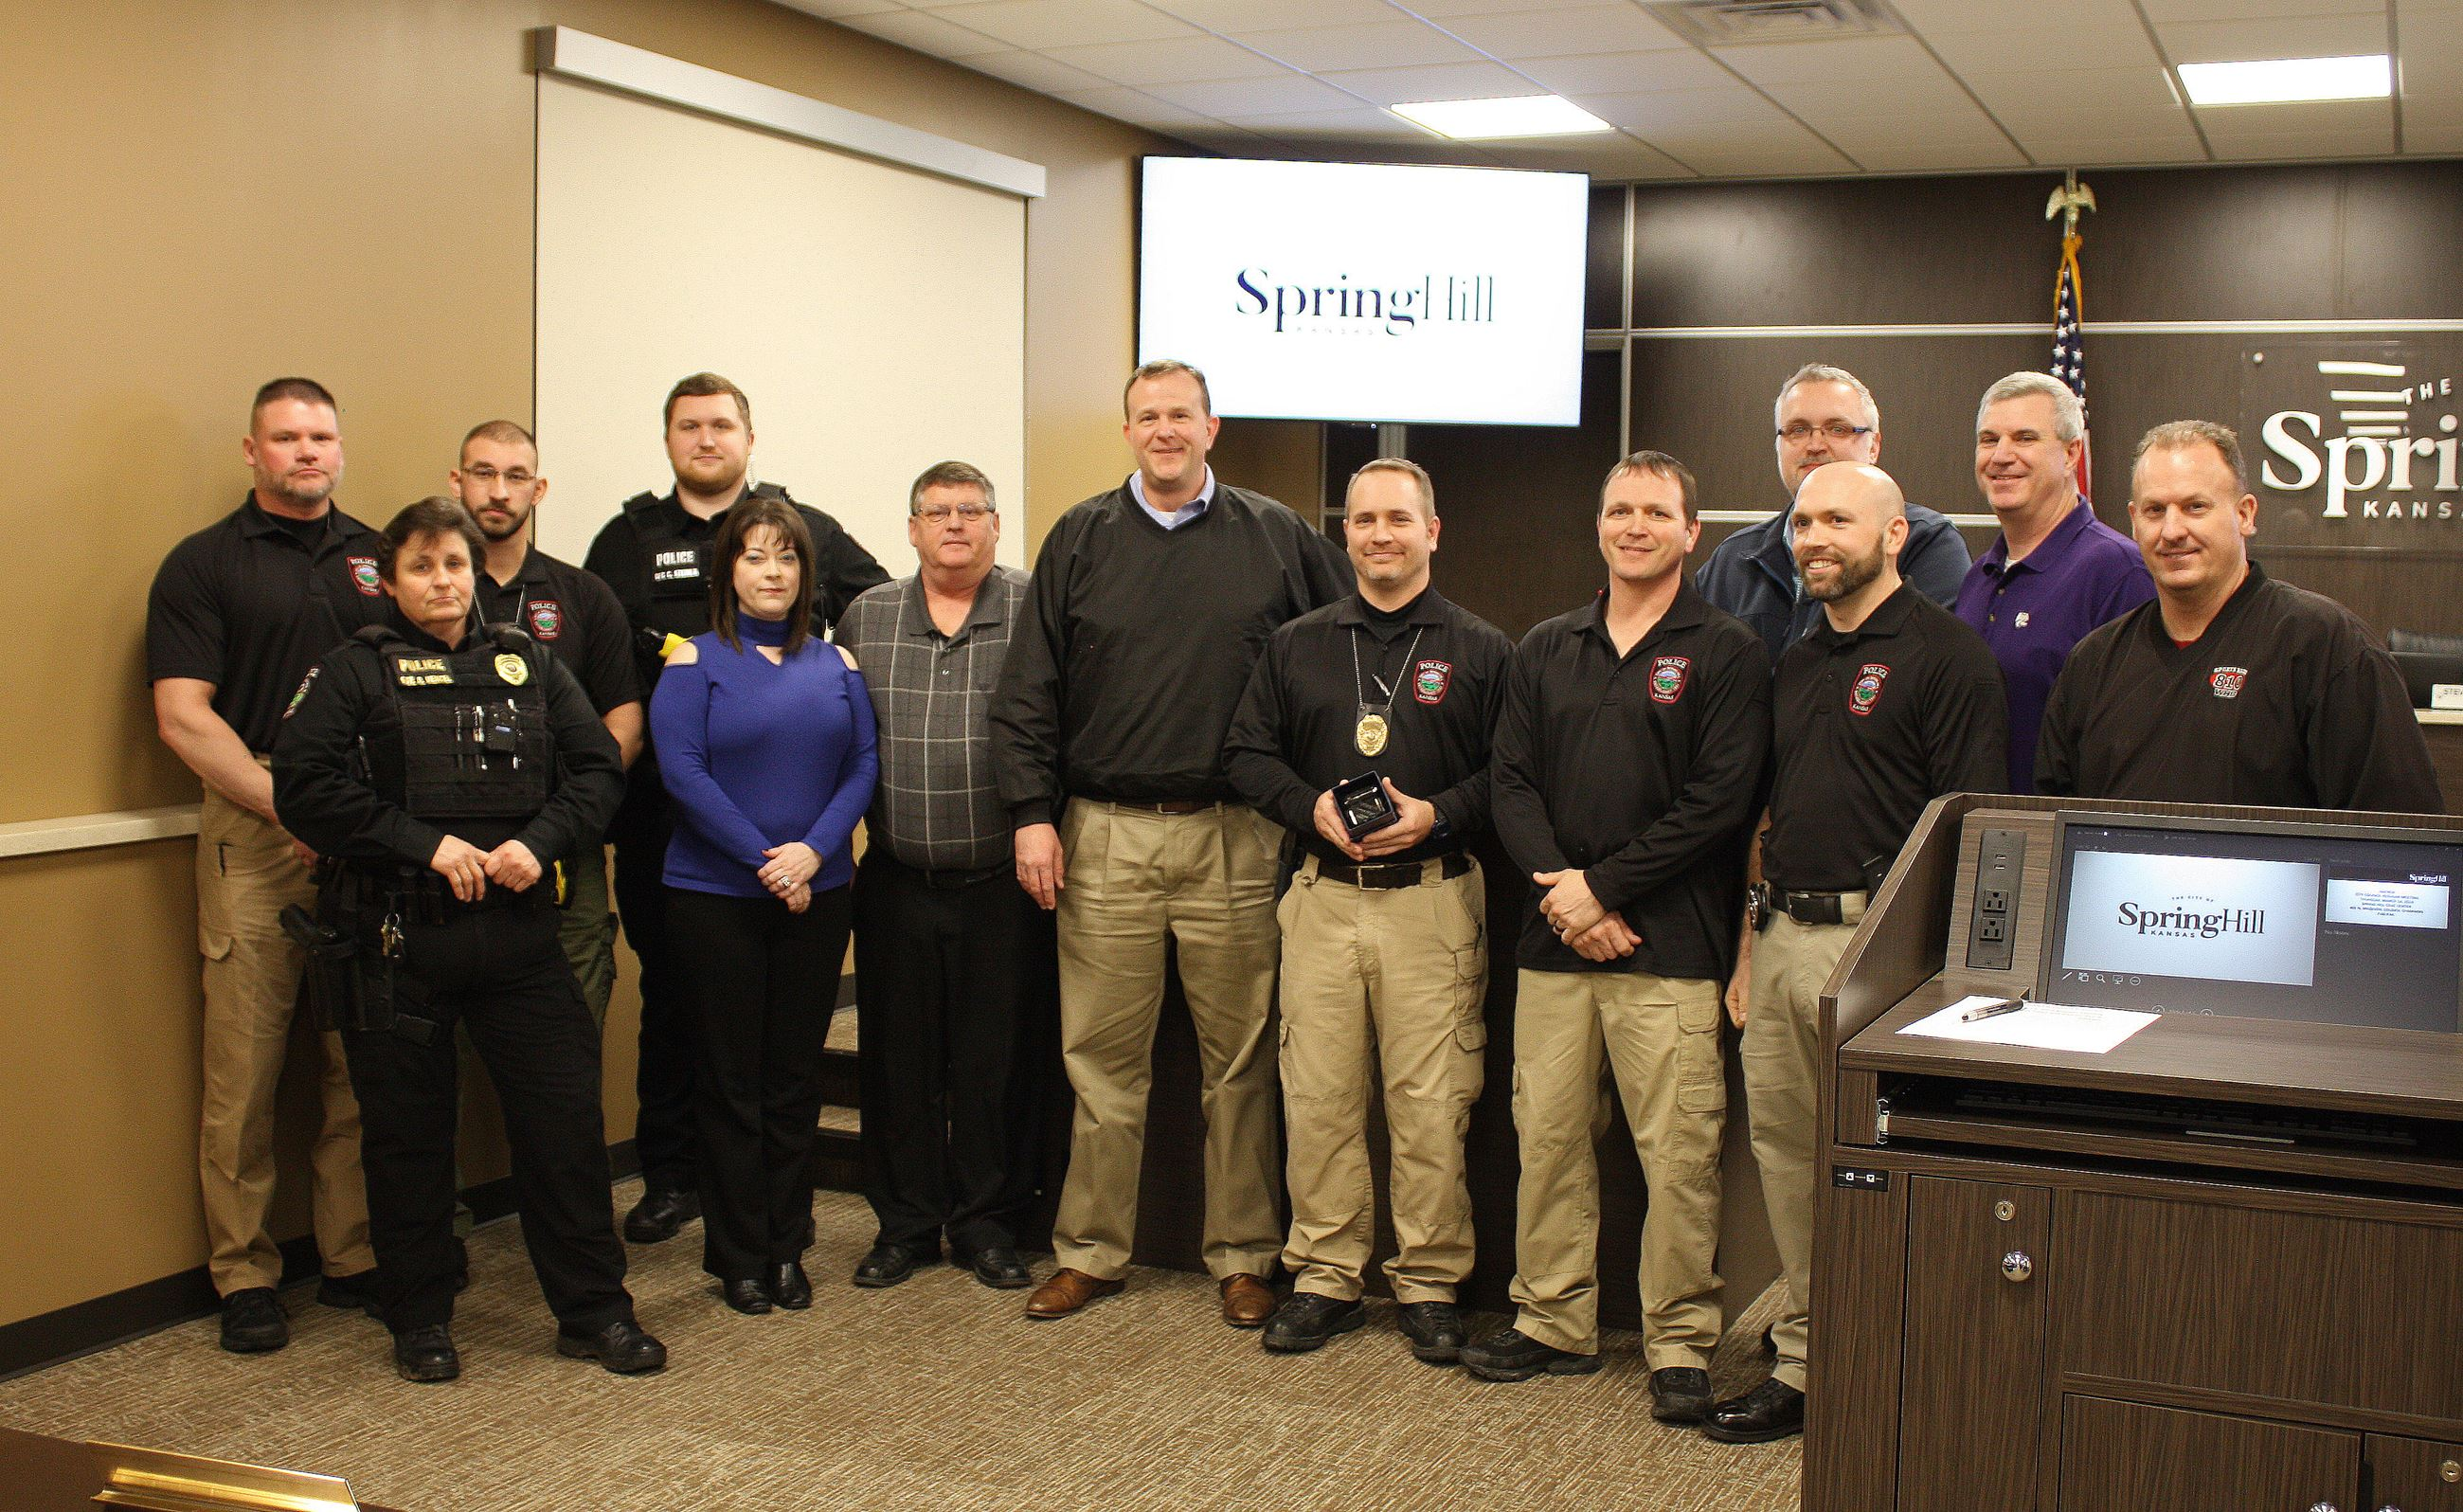 The Governing Body honored Interim Police Chief Lance Wipf for his yearlong service to the City of S